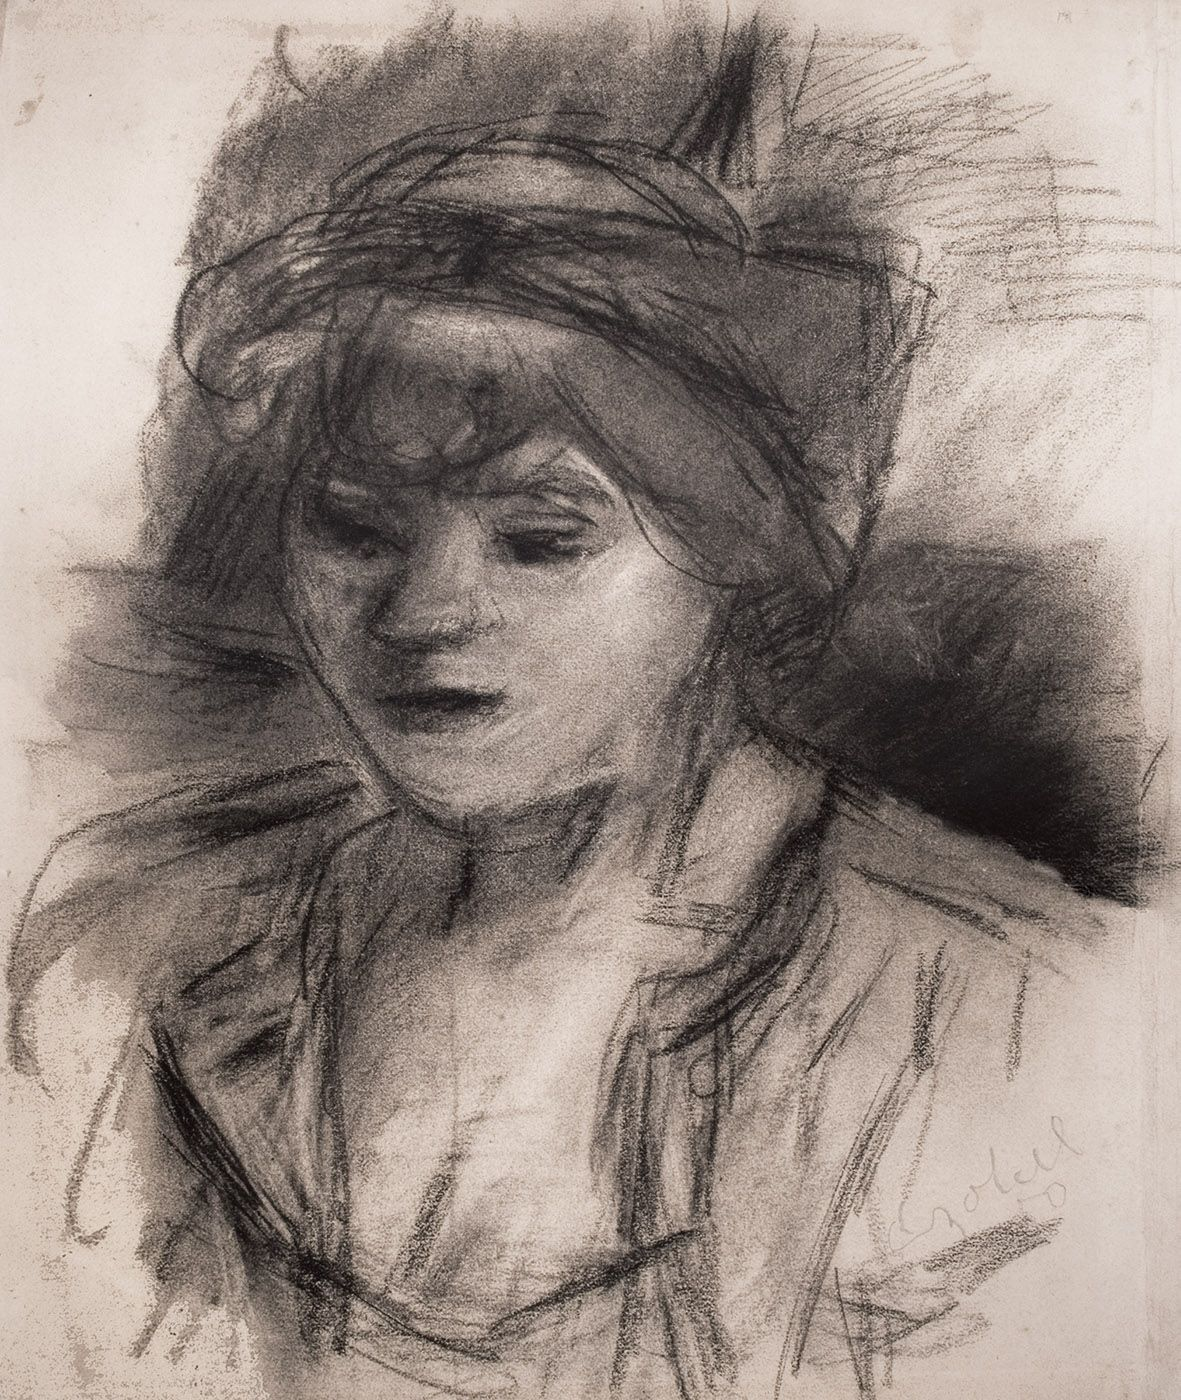 Portrait of a Girl with Scarf in Her Hair